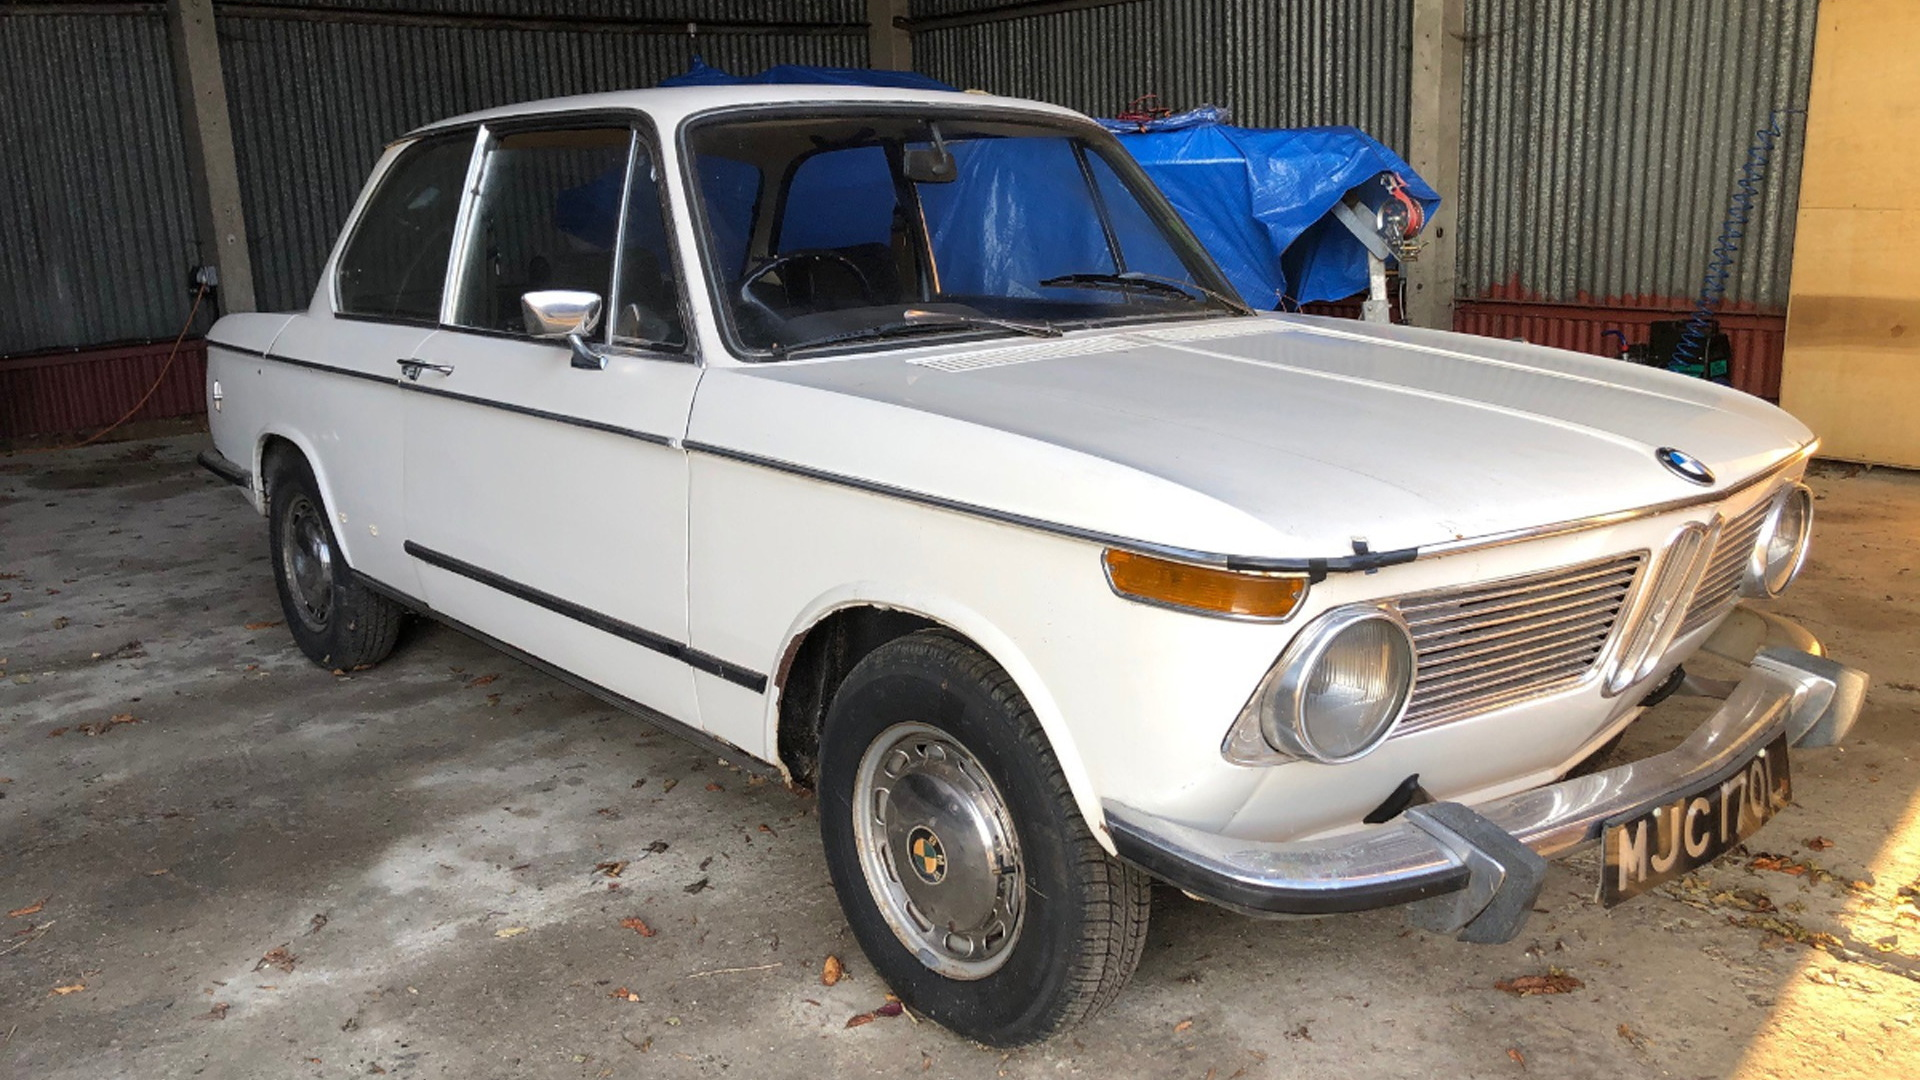 1972 BMW 1602 that Jamiroquai lead singer Jay Kay learned to drive in